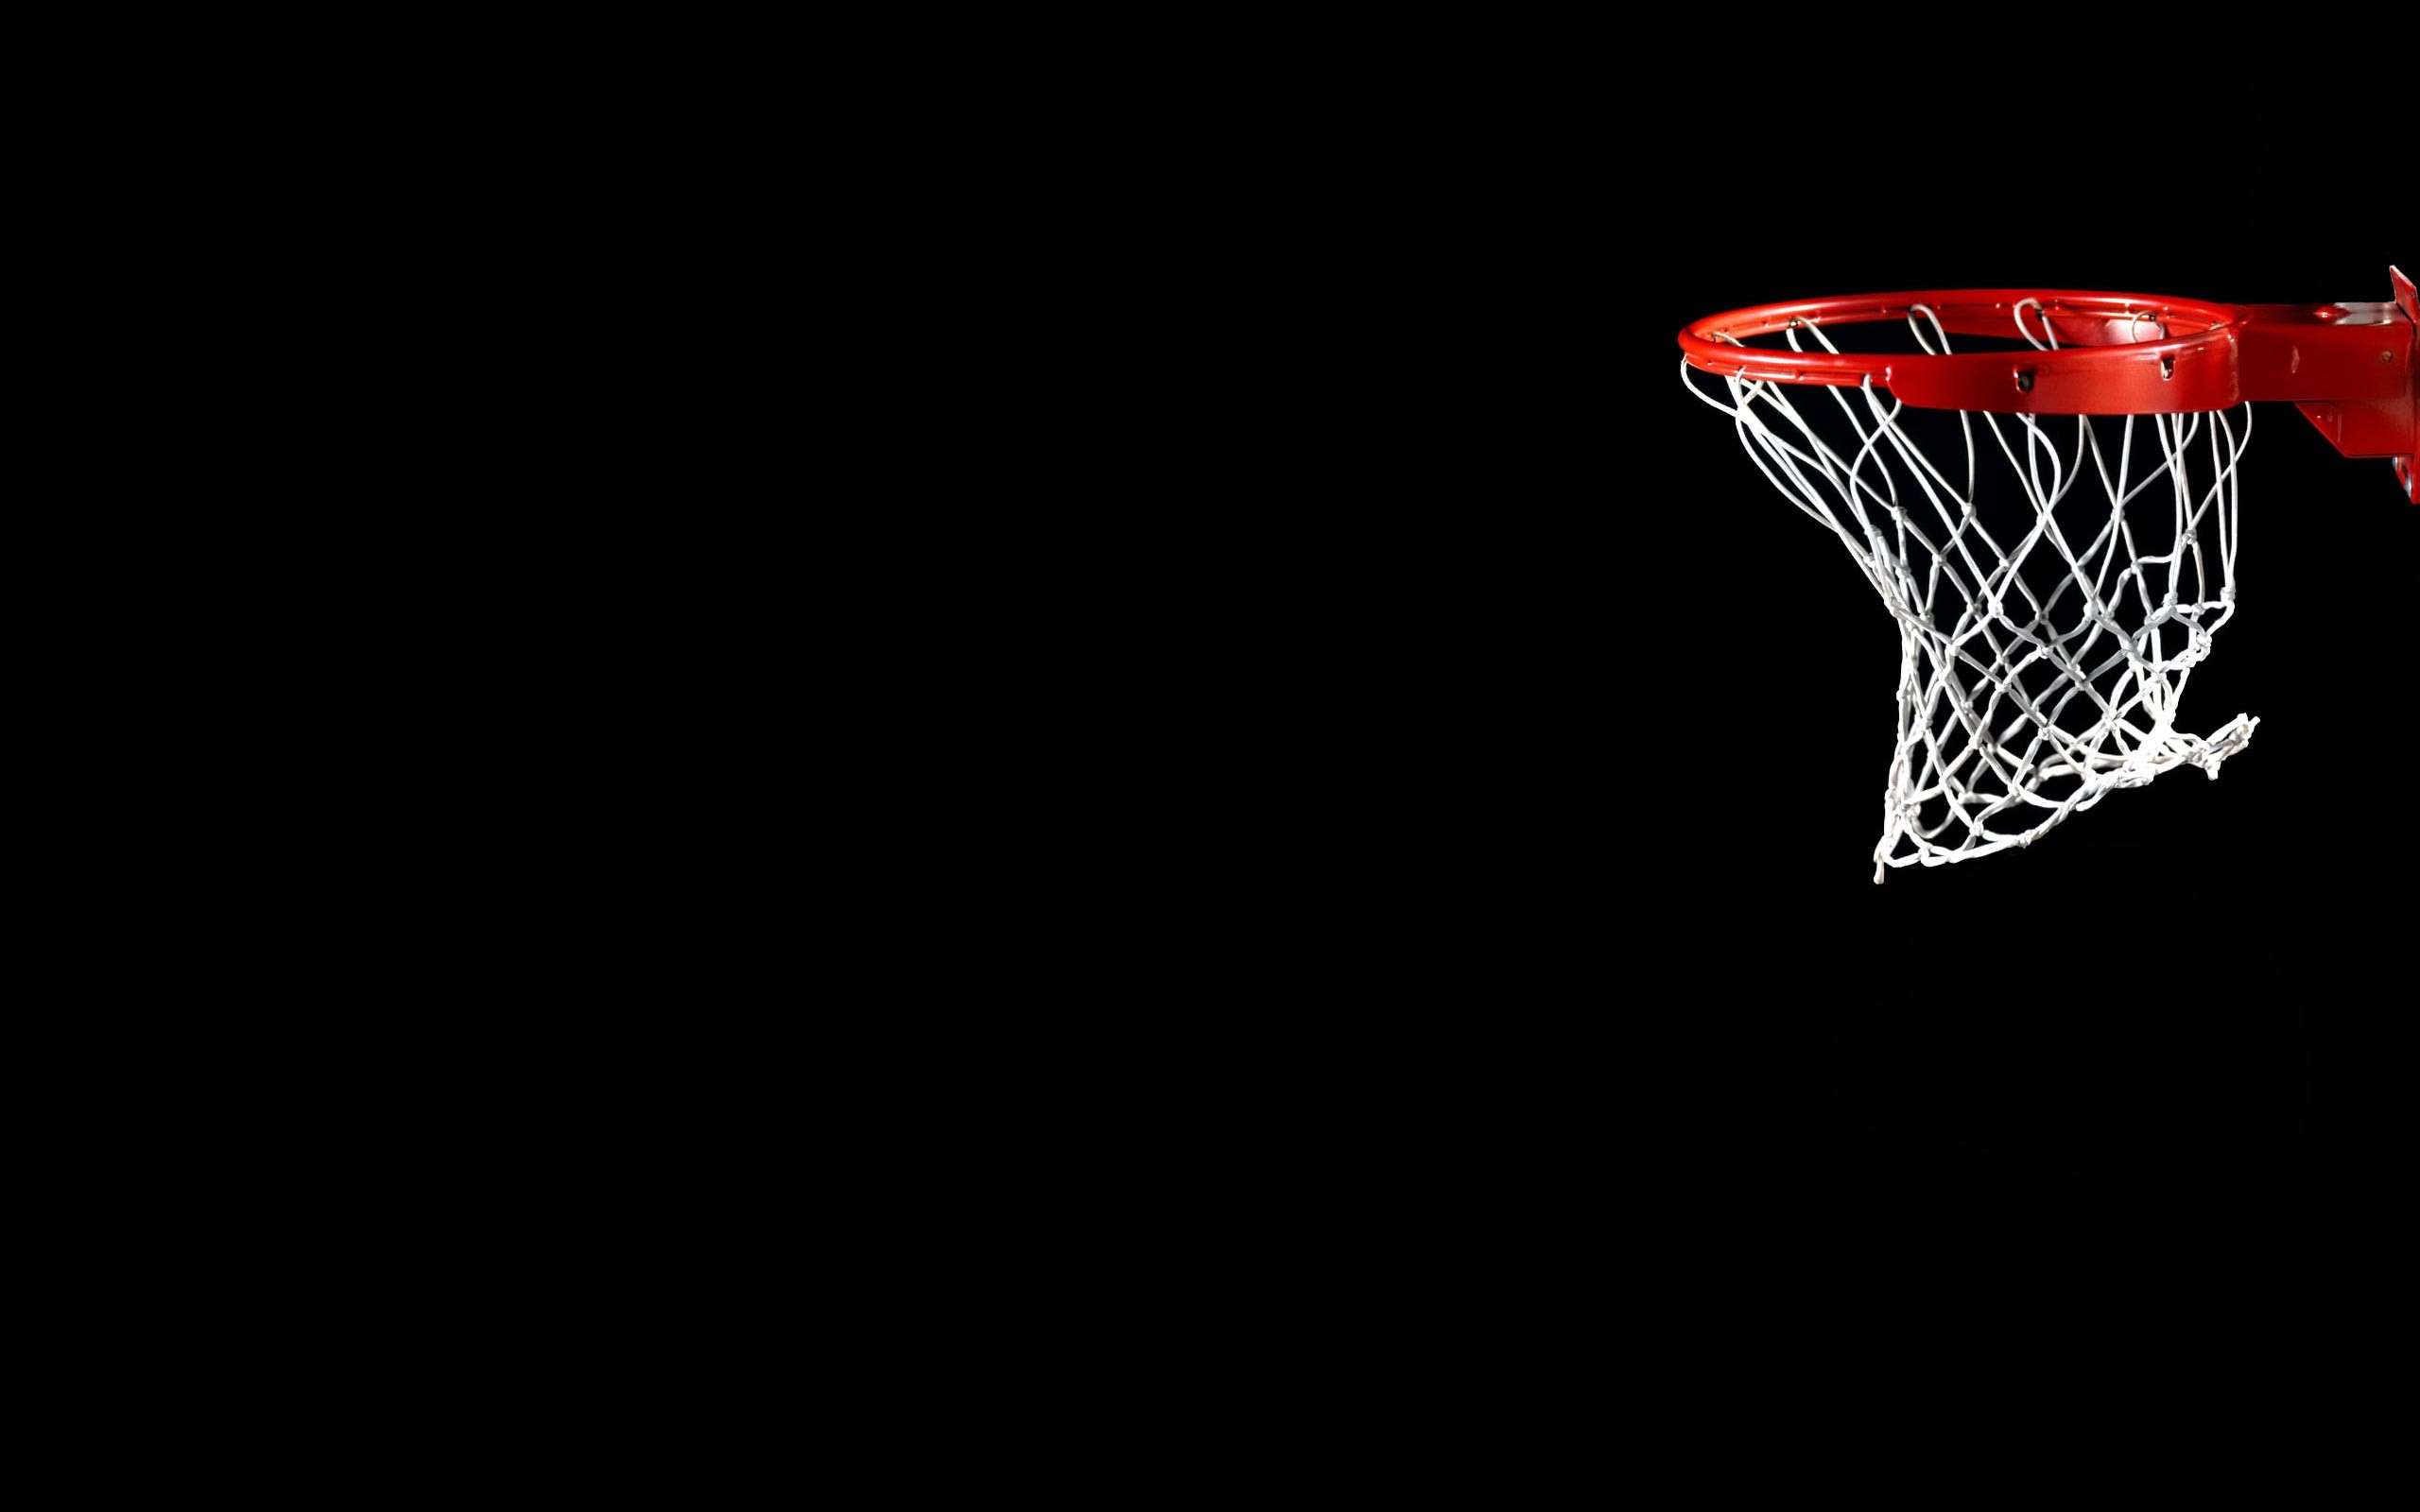 2560x1600 High Definition Basketball Wallpaper - 4K Ultra HD Image